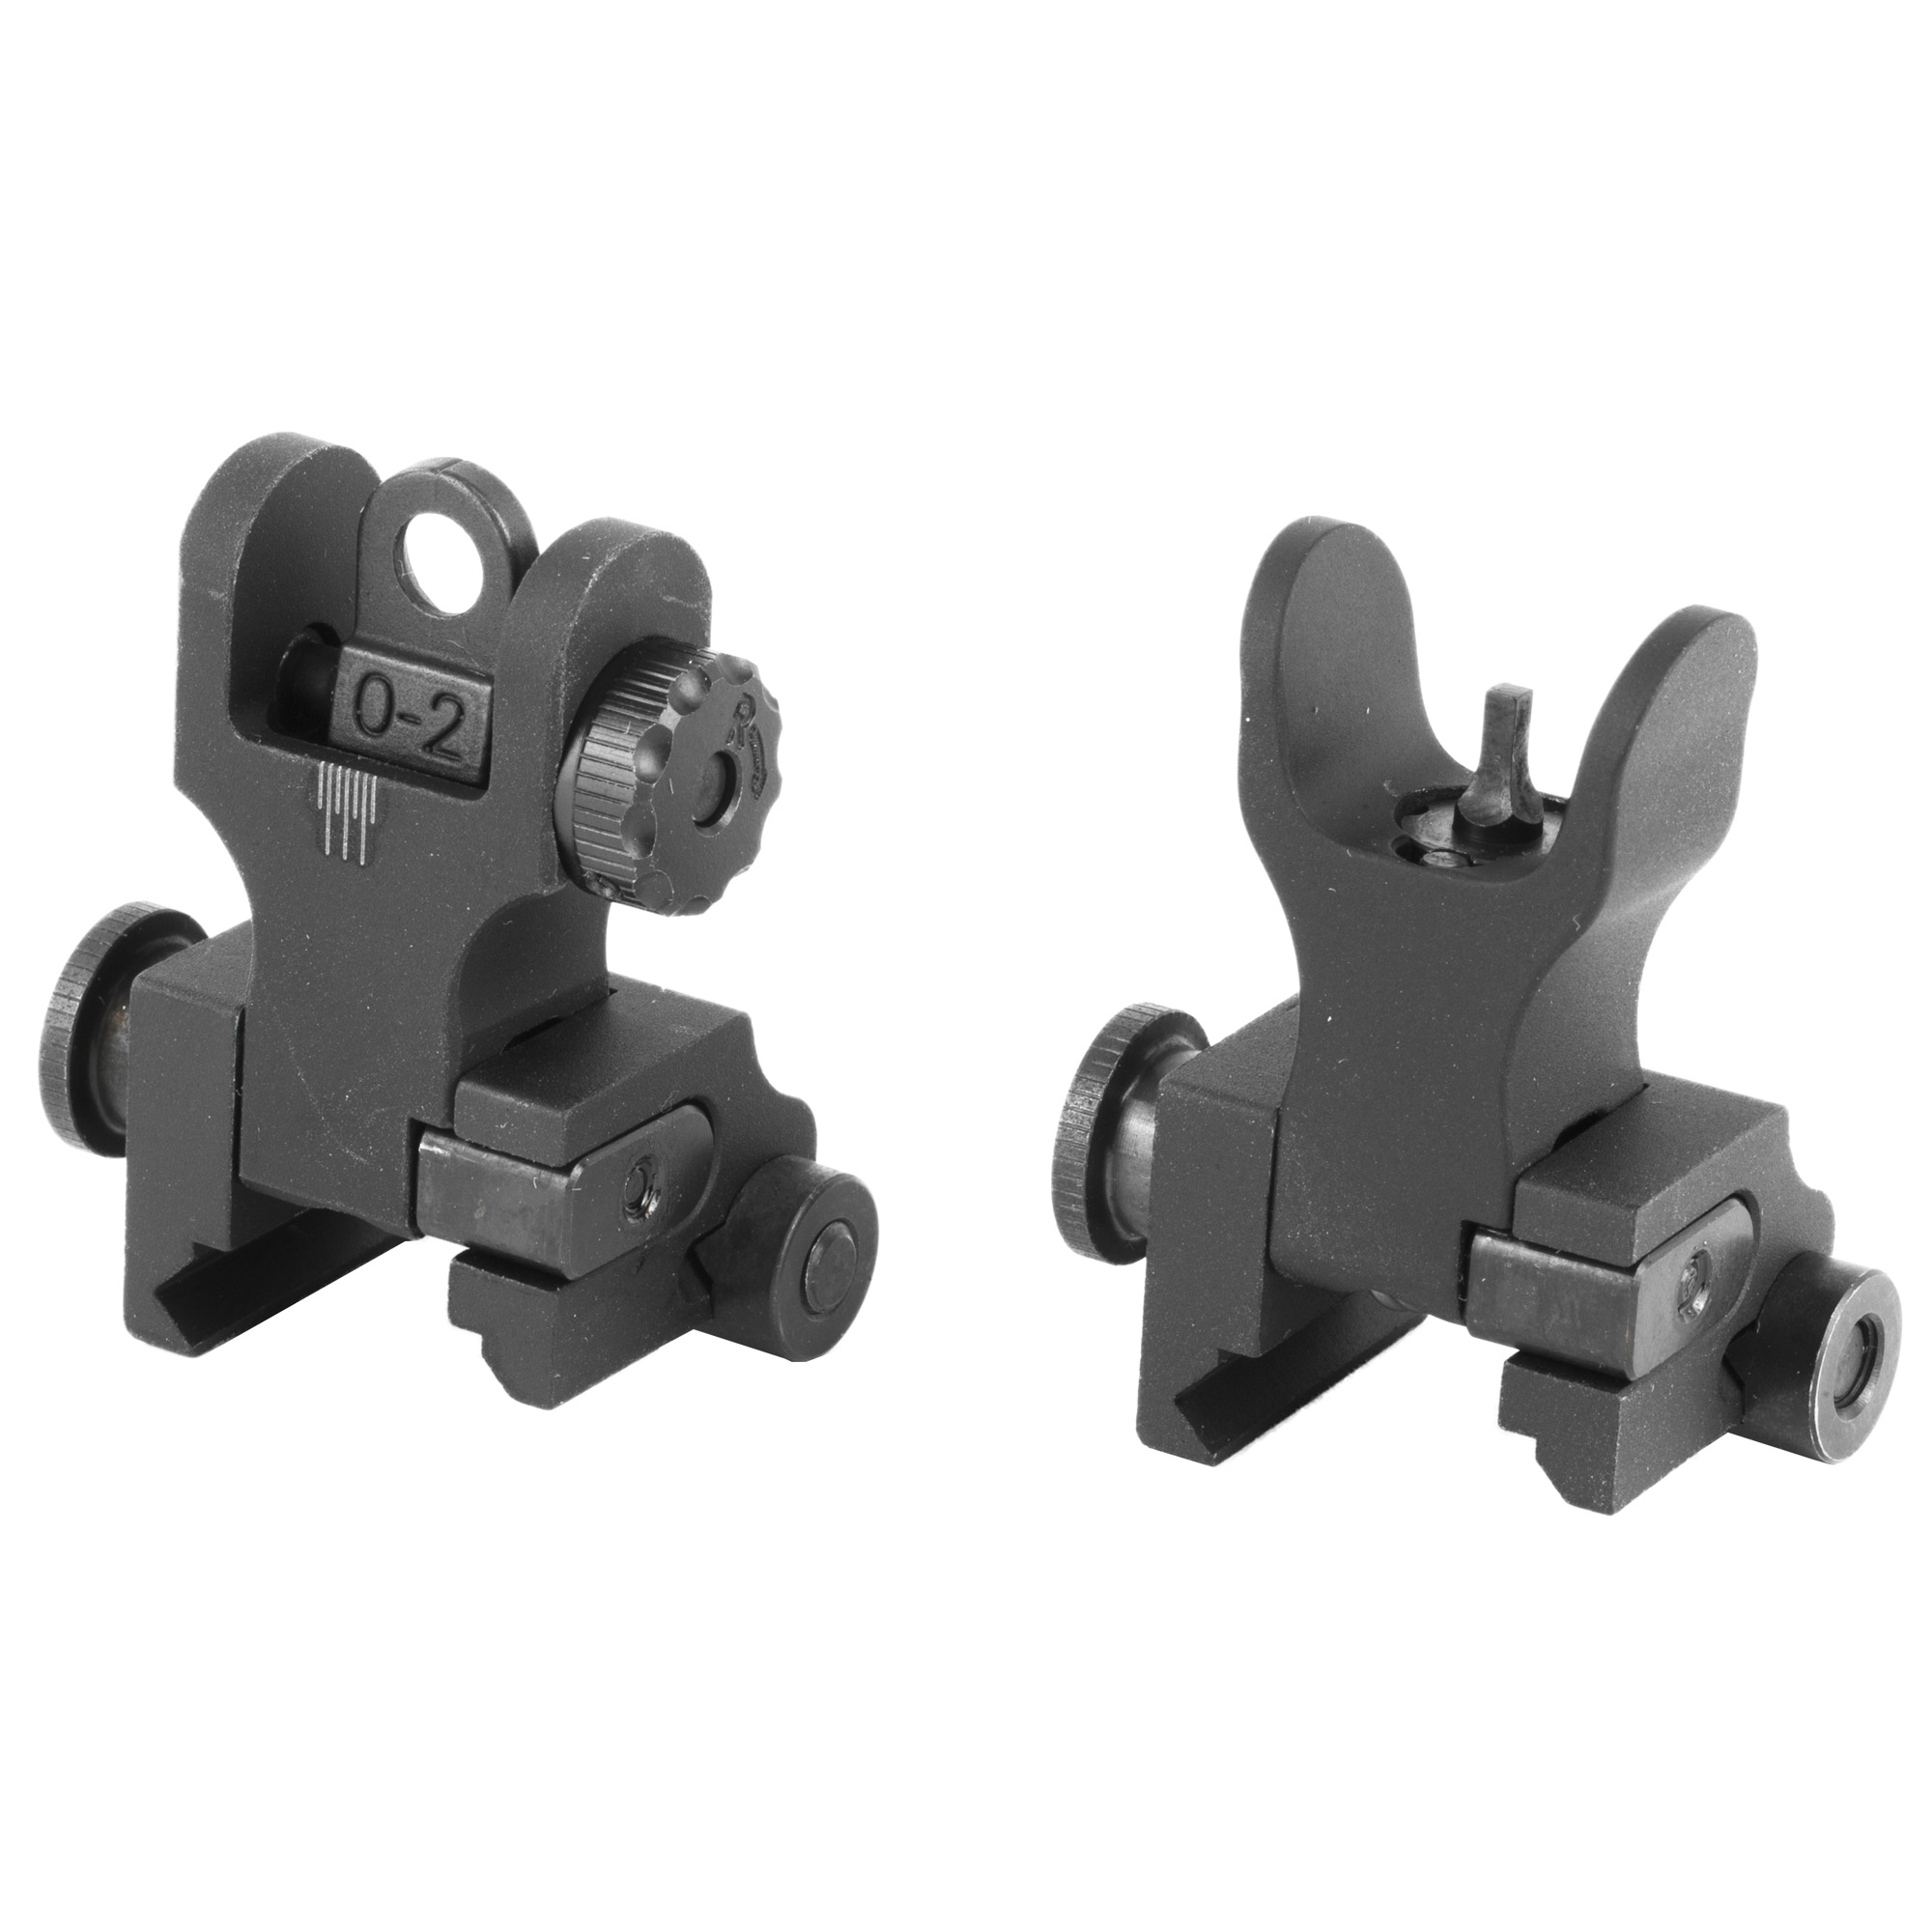 Samson Quick Flip Sights are the most robust combat sights on the market. Accepts all aftermarket rear aperture replacements with milspec dimensions. All sights lock in the deployed position. It is not intended for lower height gas block rails. The durable construction and solid mounting system guarantees you to stay on zero.